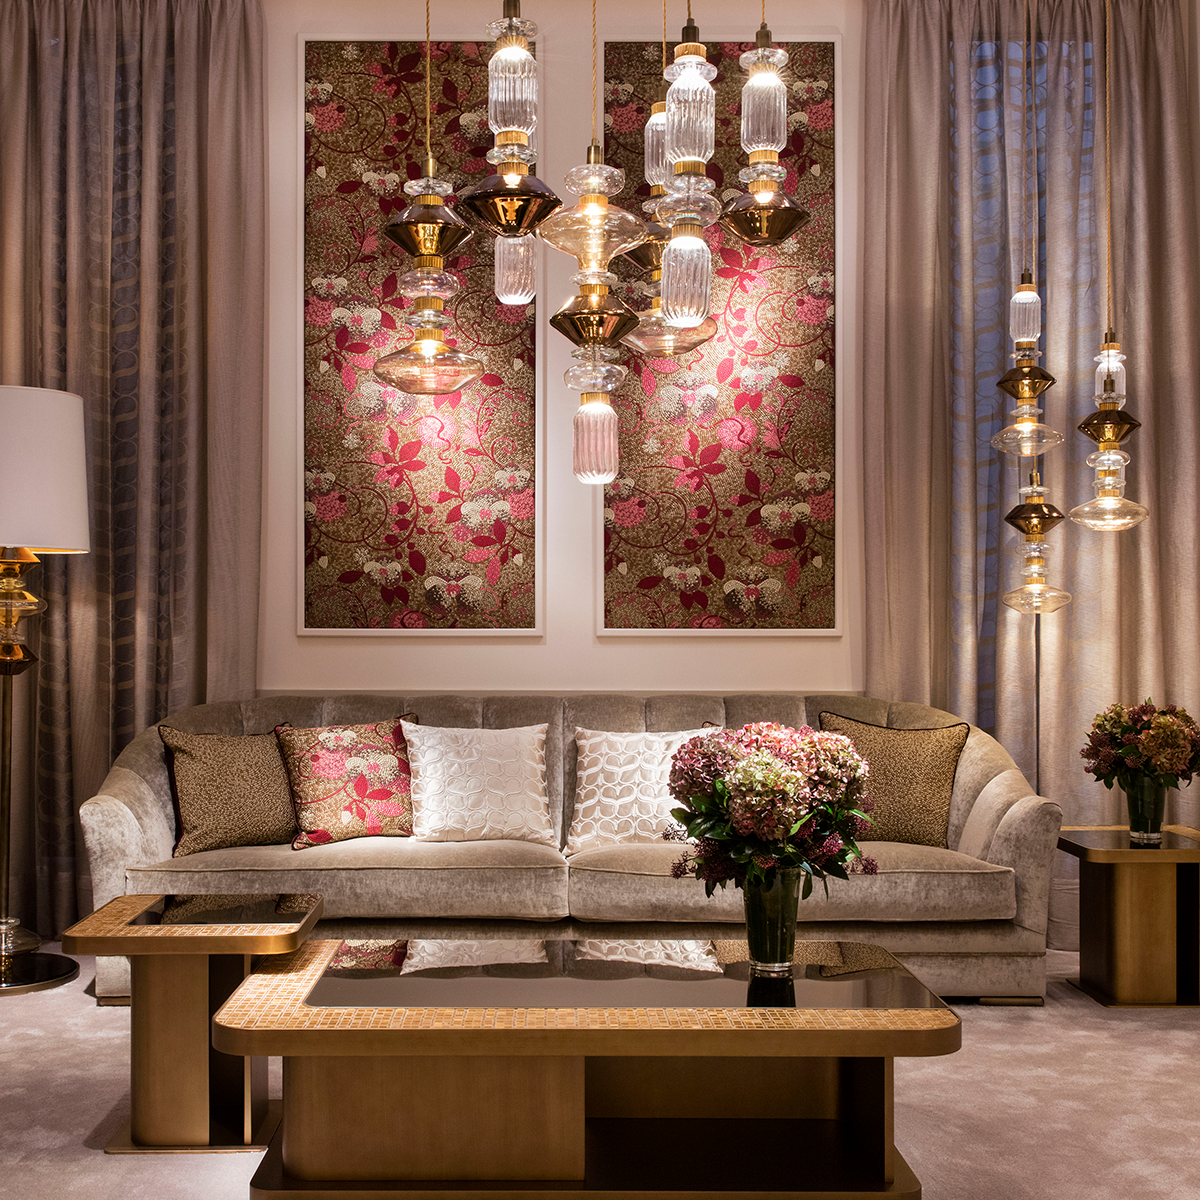 Inspired By A Parisian House, This Living Room Has Our Signature On From  Fabrics,